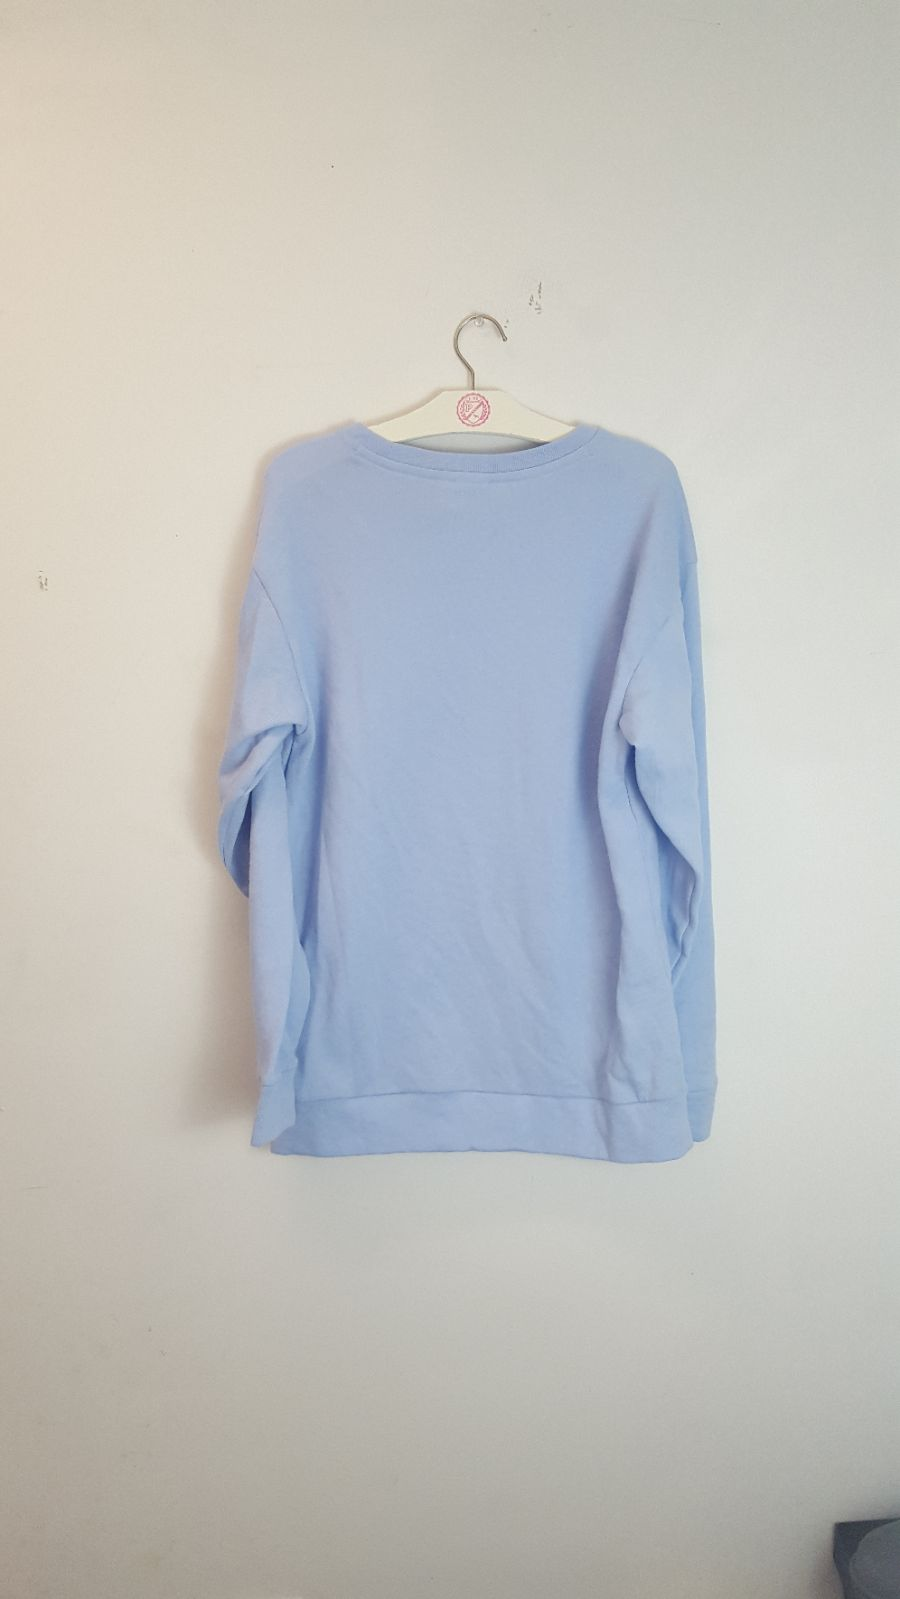 VS PINK Oversized Baby Blue Crewneck - Mercari: BUY & SELL THINGS ...